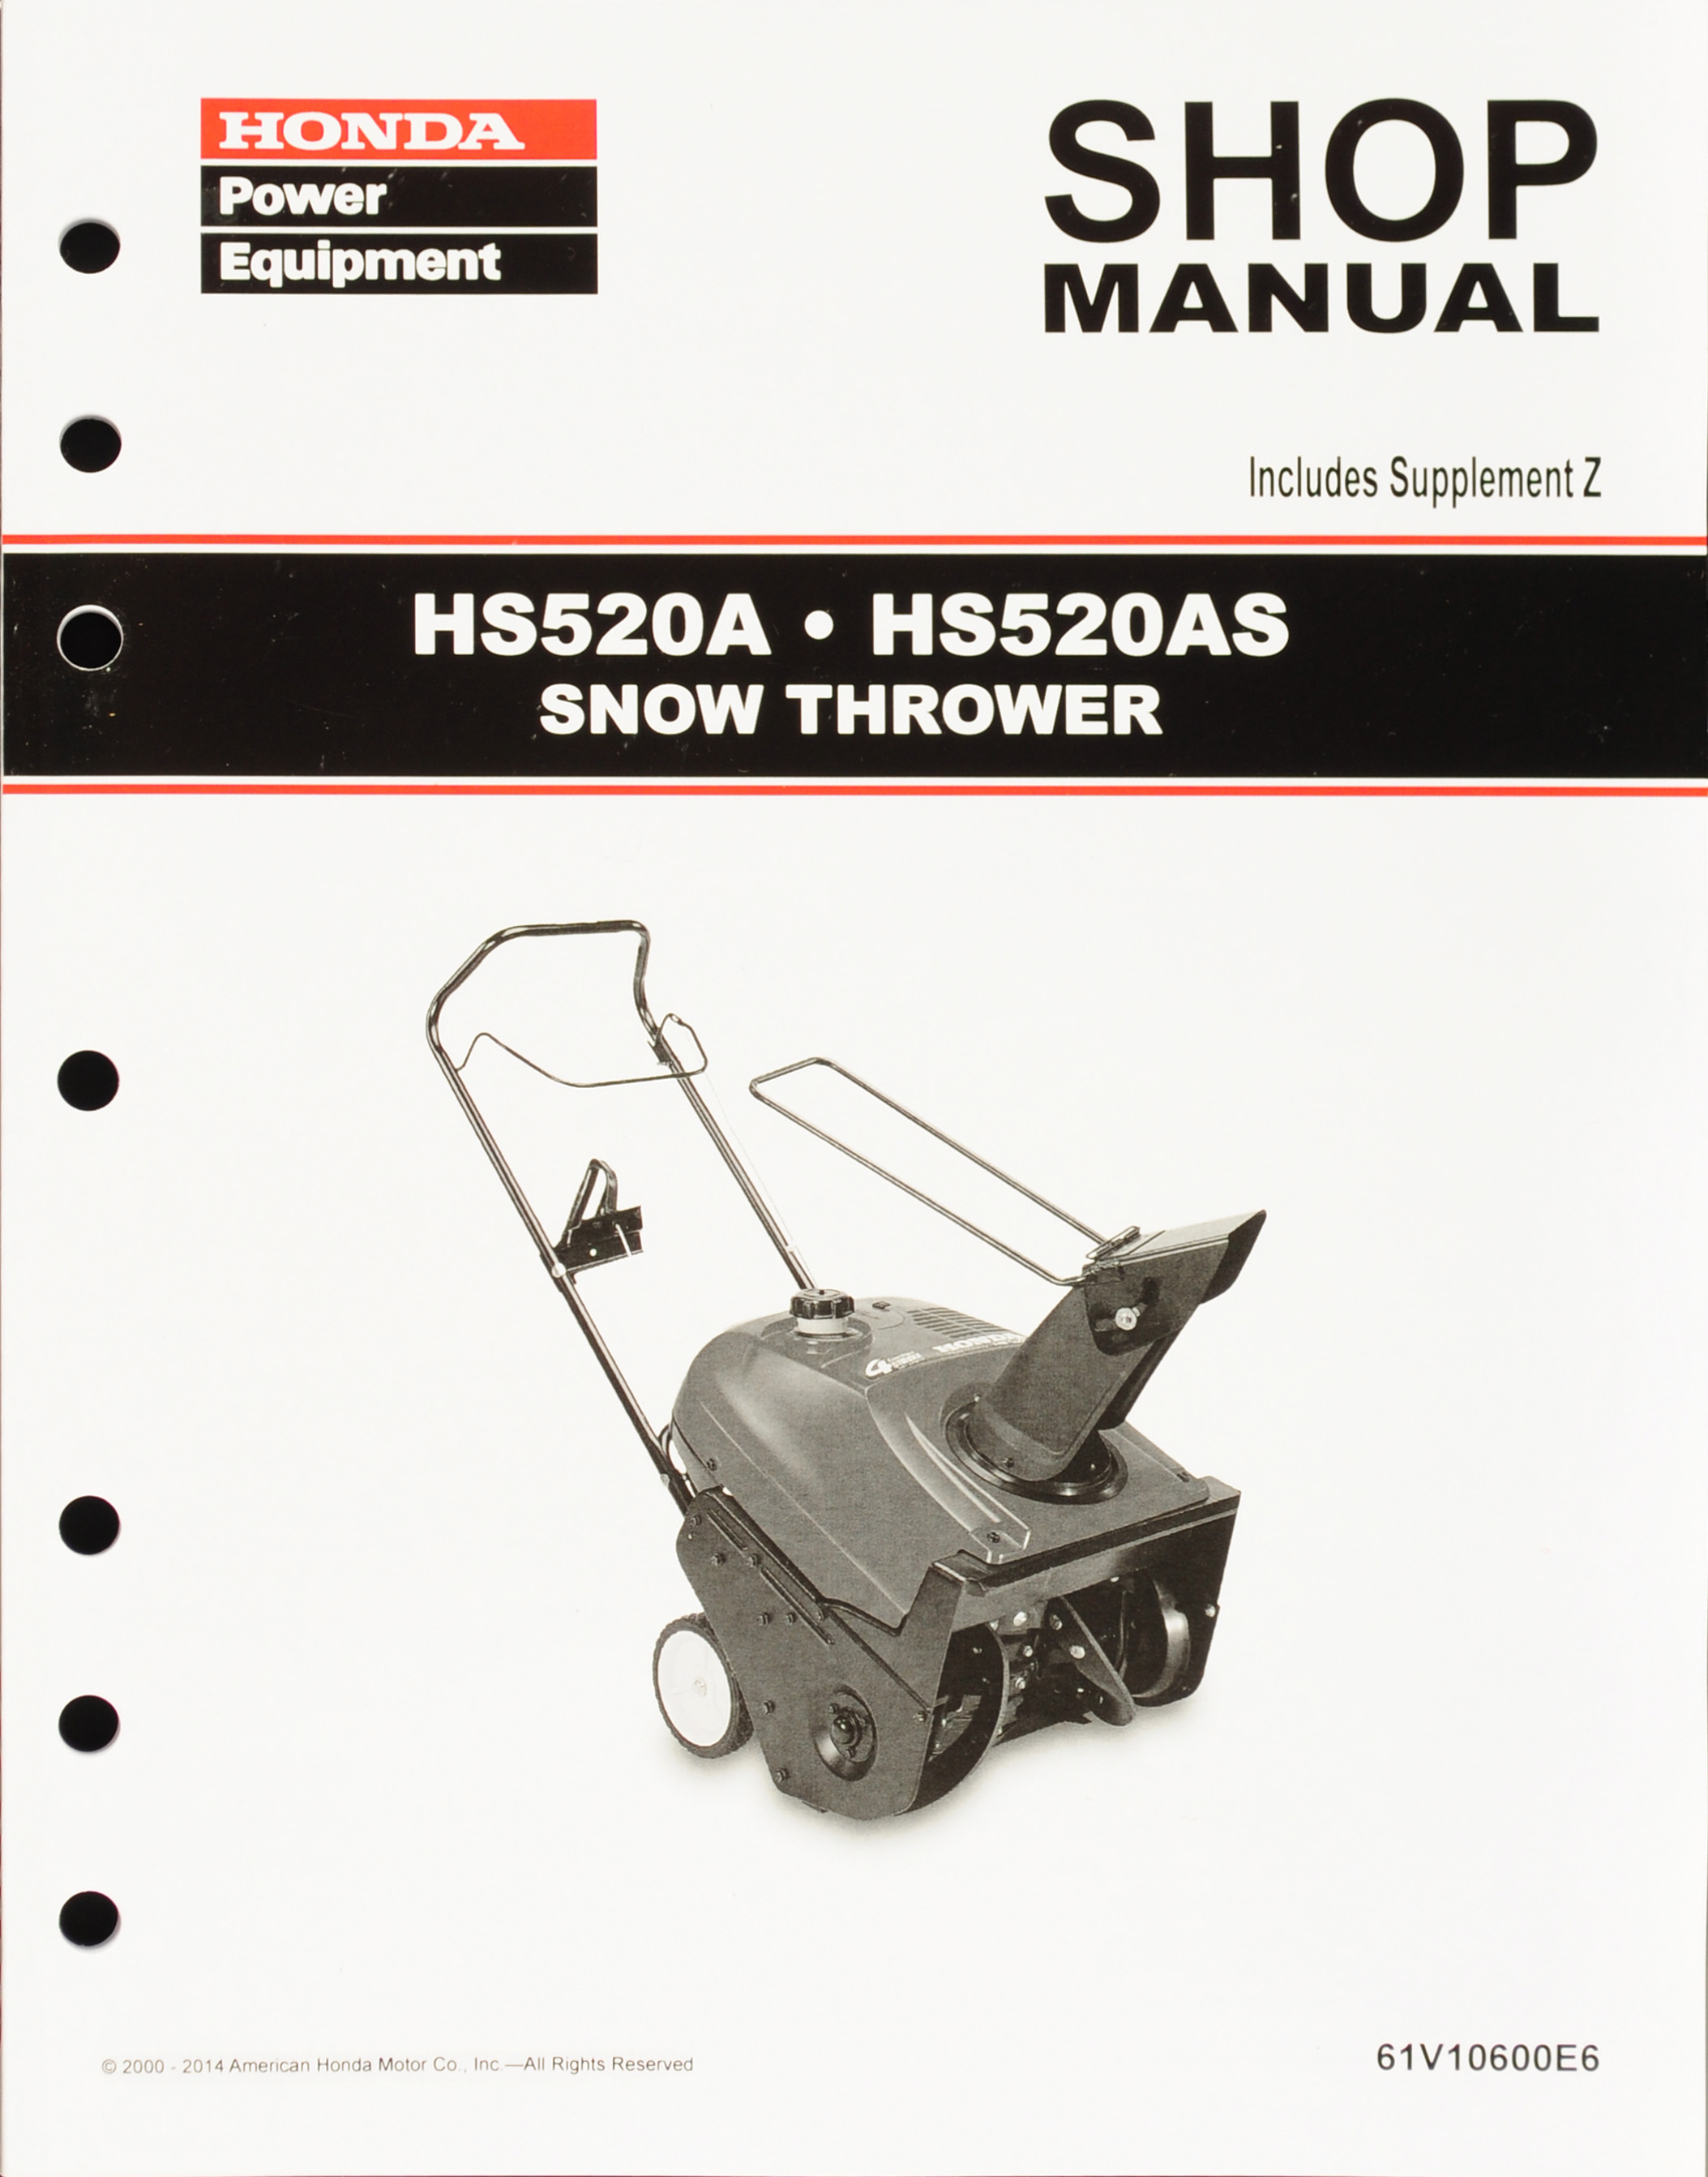 honda power equipment shop manuals publications honda power rh publications powerequipment honda com Fuel Pump Honda 4013 Fuel Pump Honda 4013